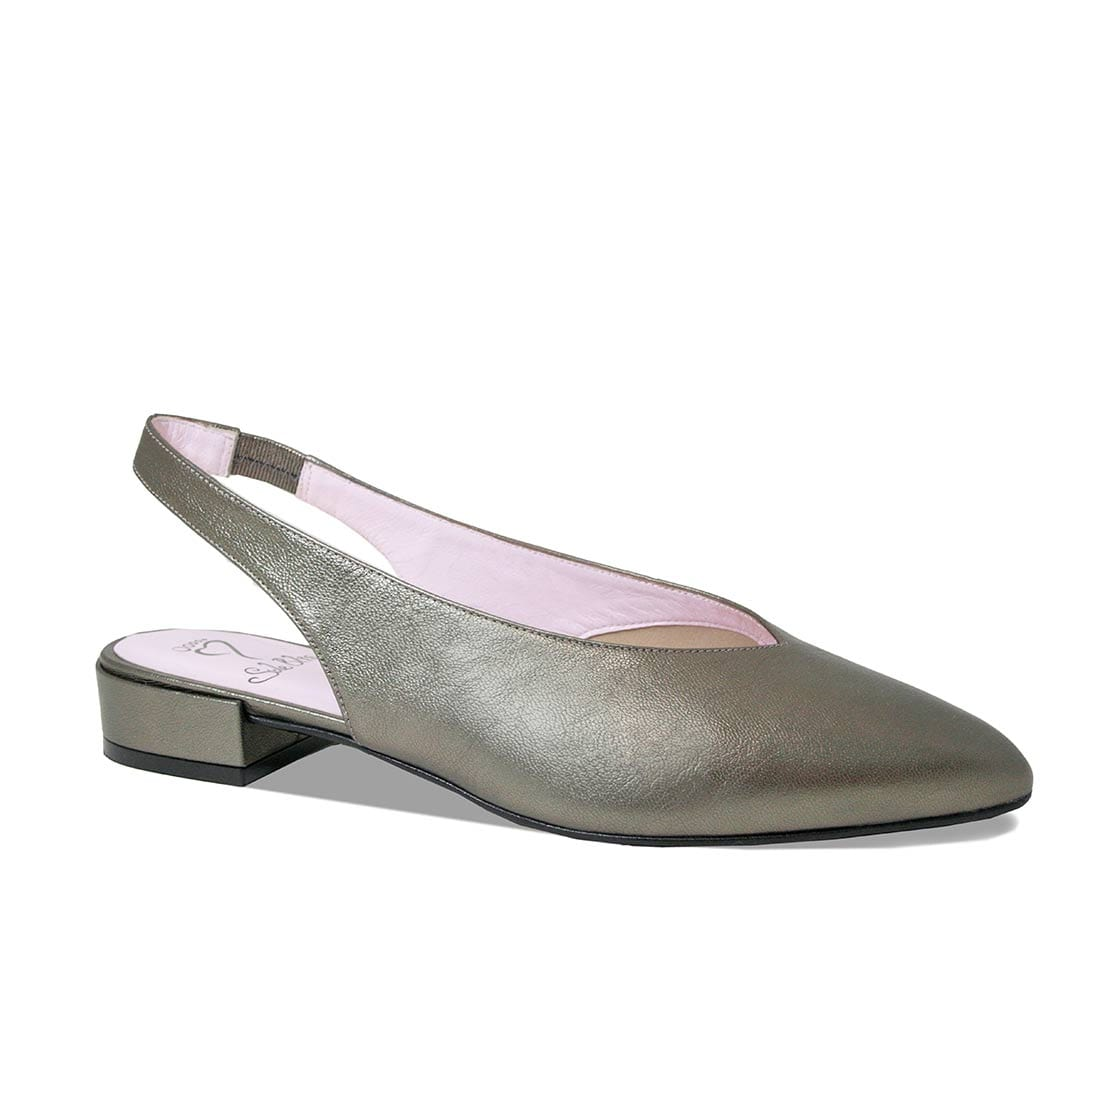 Pewter Leather Flat Sling-Back Shoes